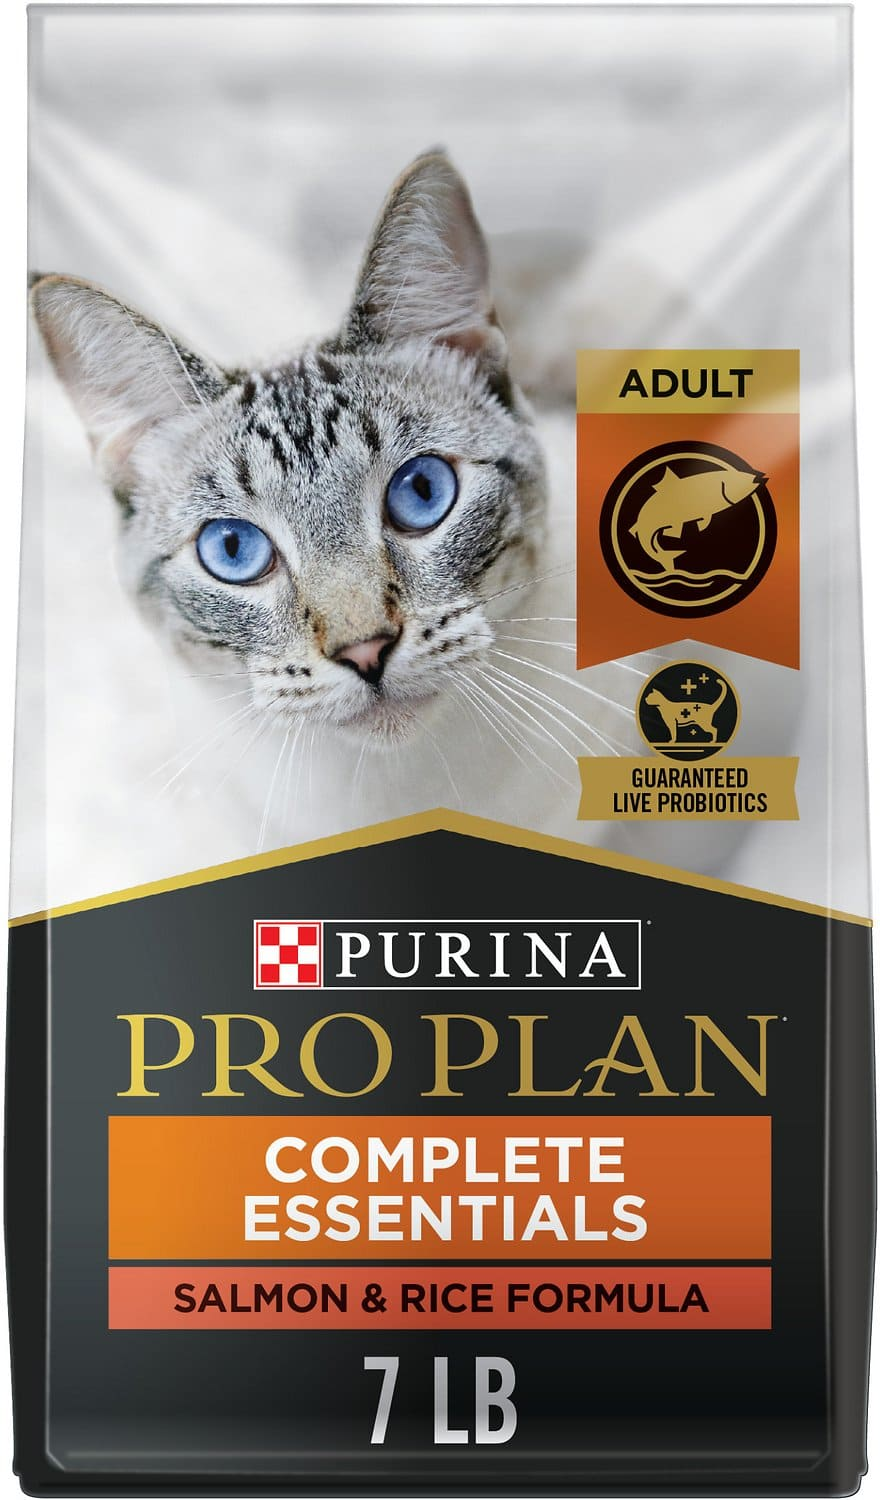 Purina Pro Plan Adult Complete Essentials  7 lbs Salmon & Rice 1